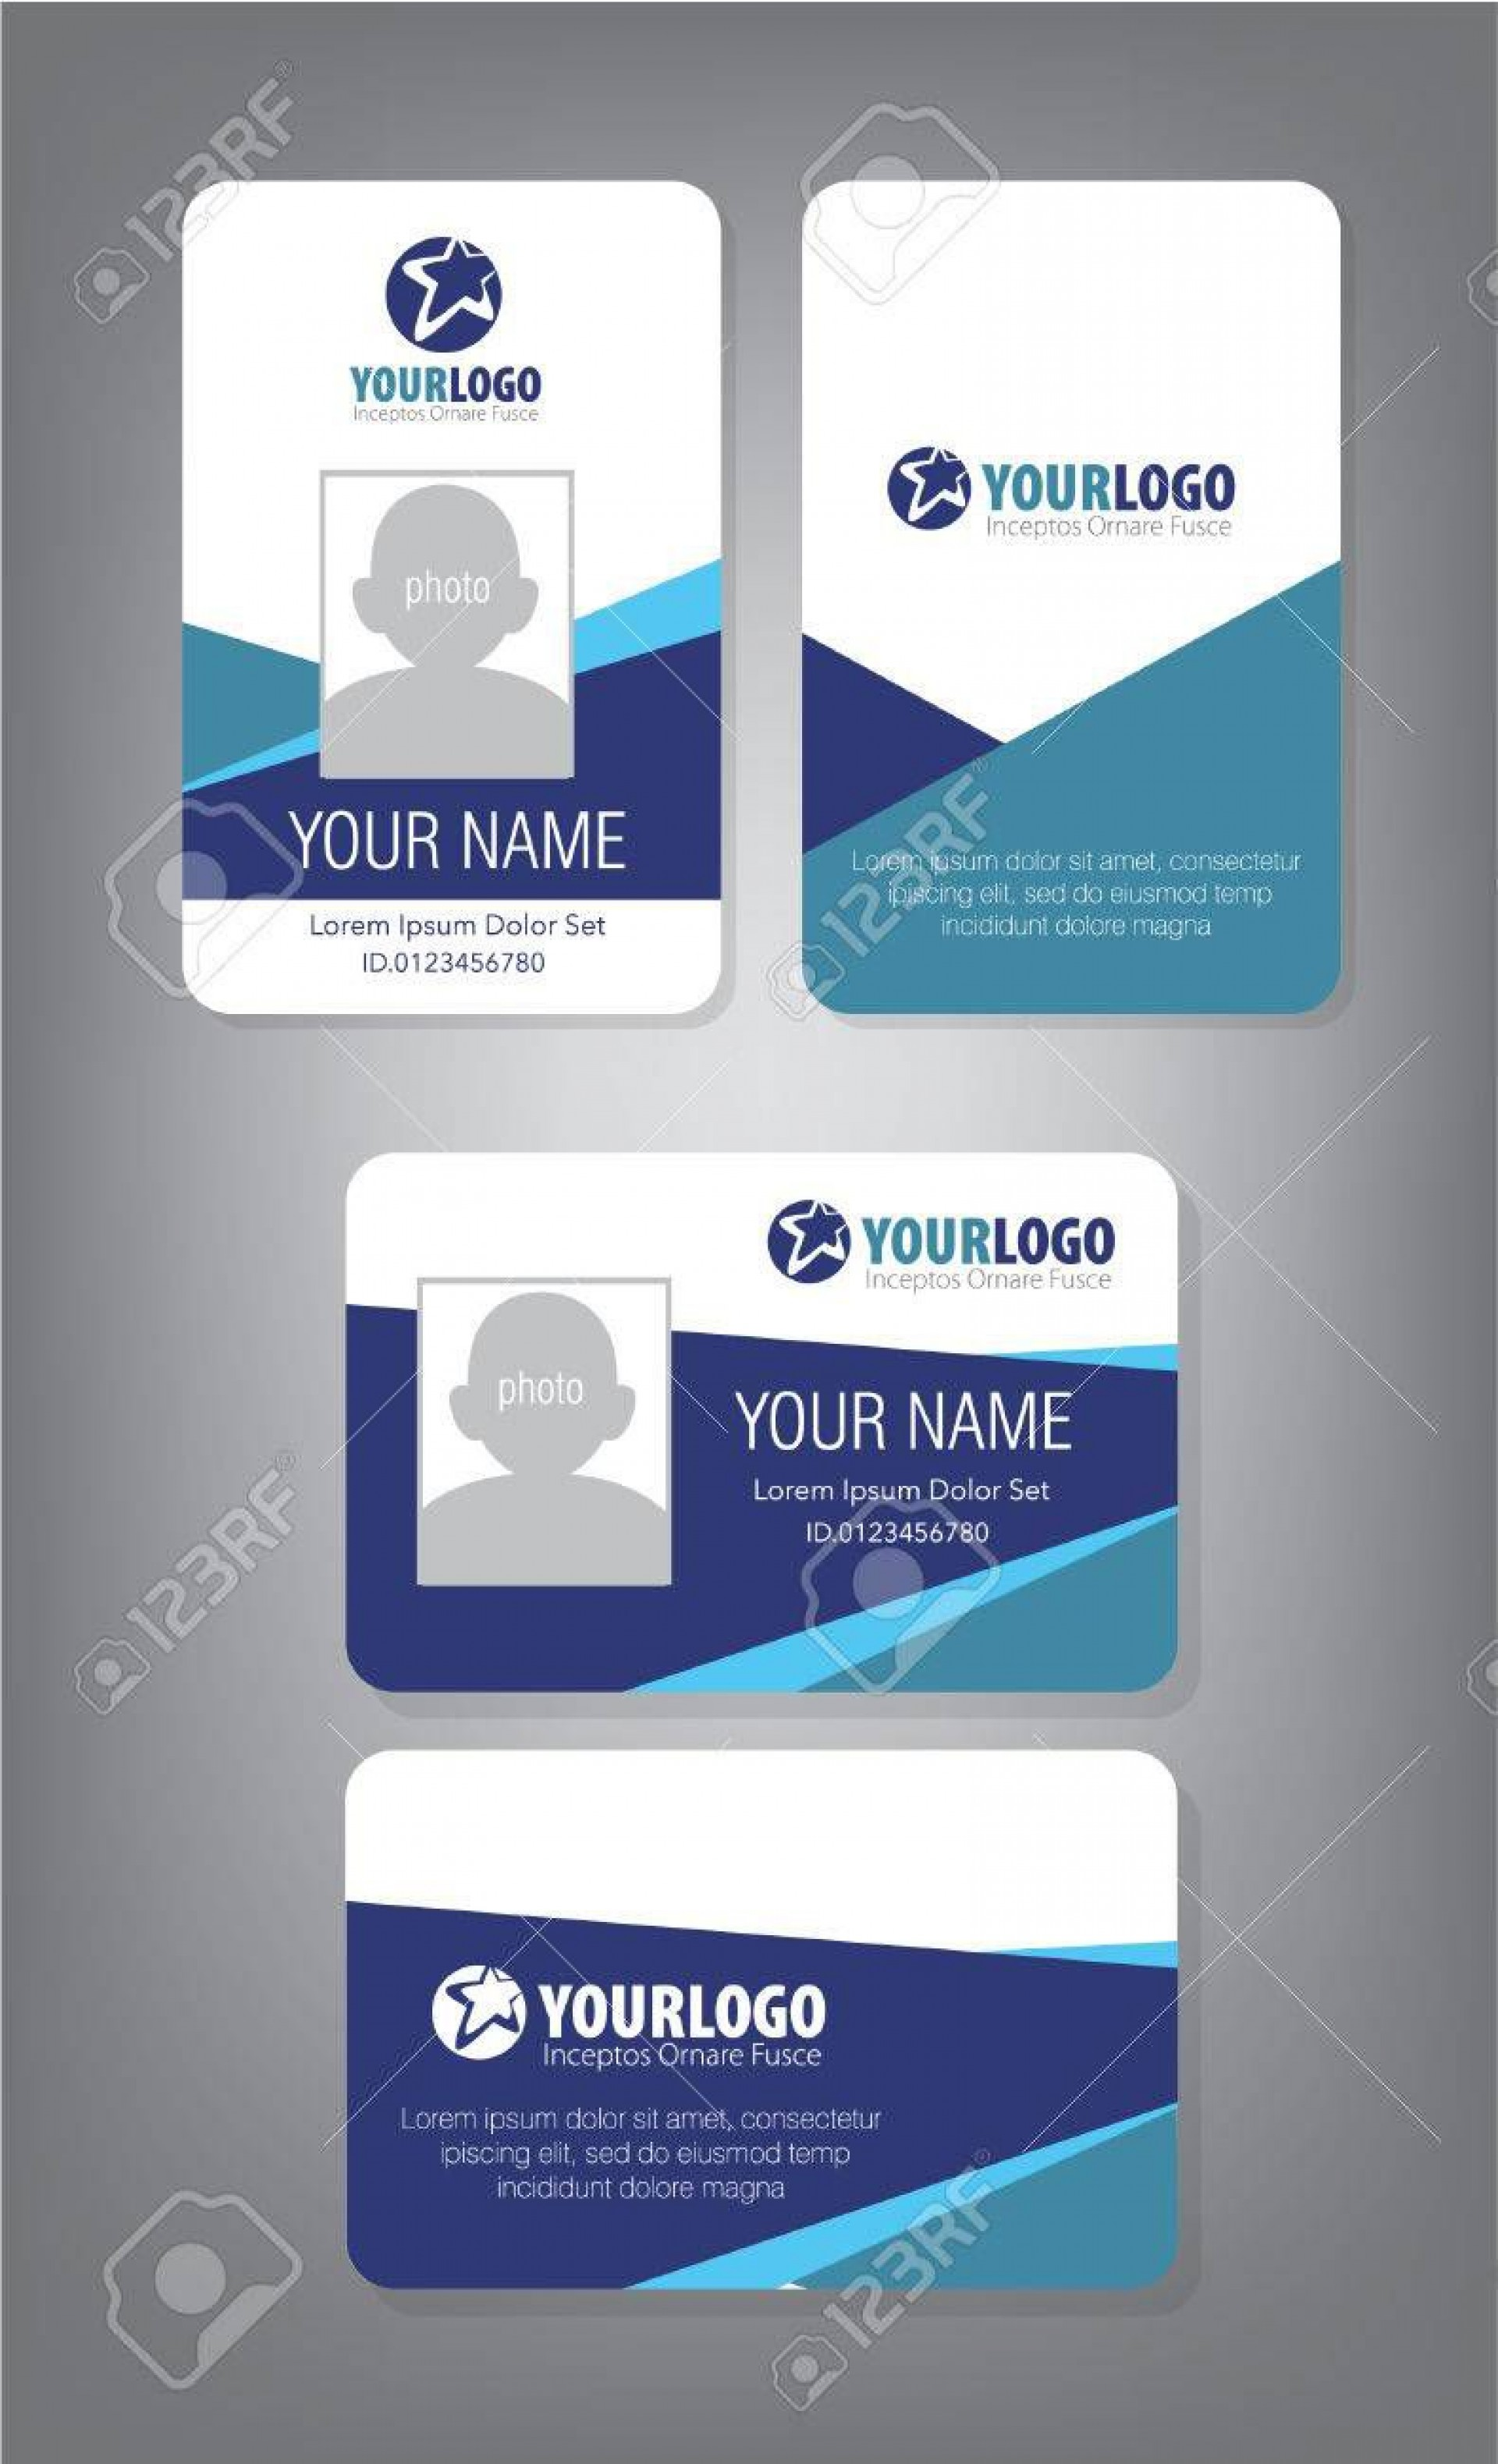 001 Unique Employee Id Badge Template Example  Avery Card Free Download Word1920